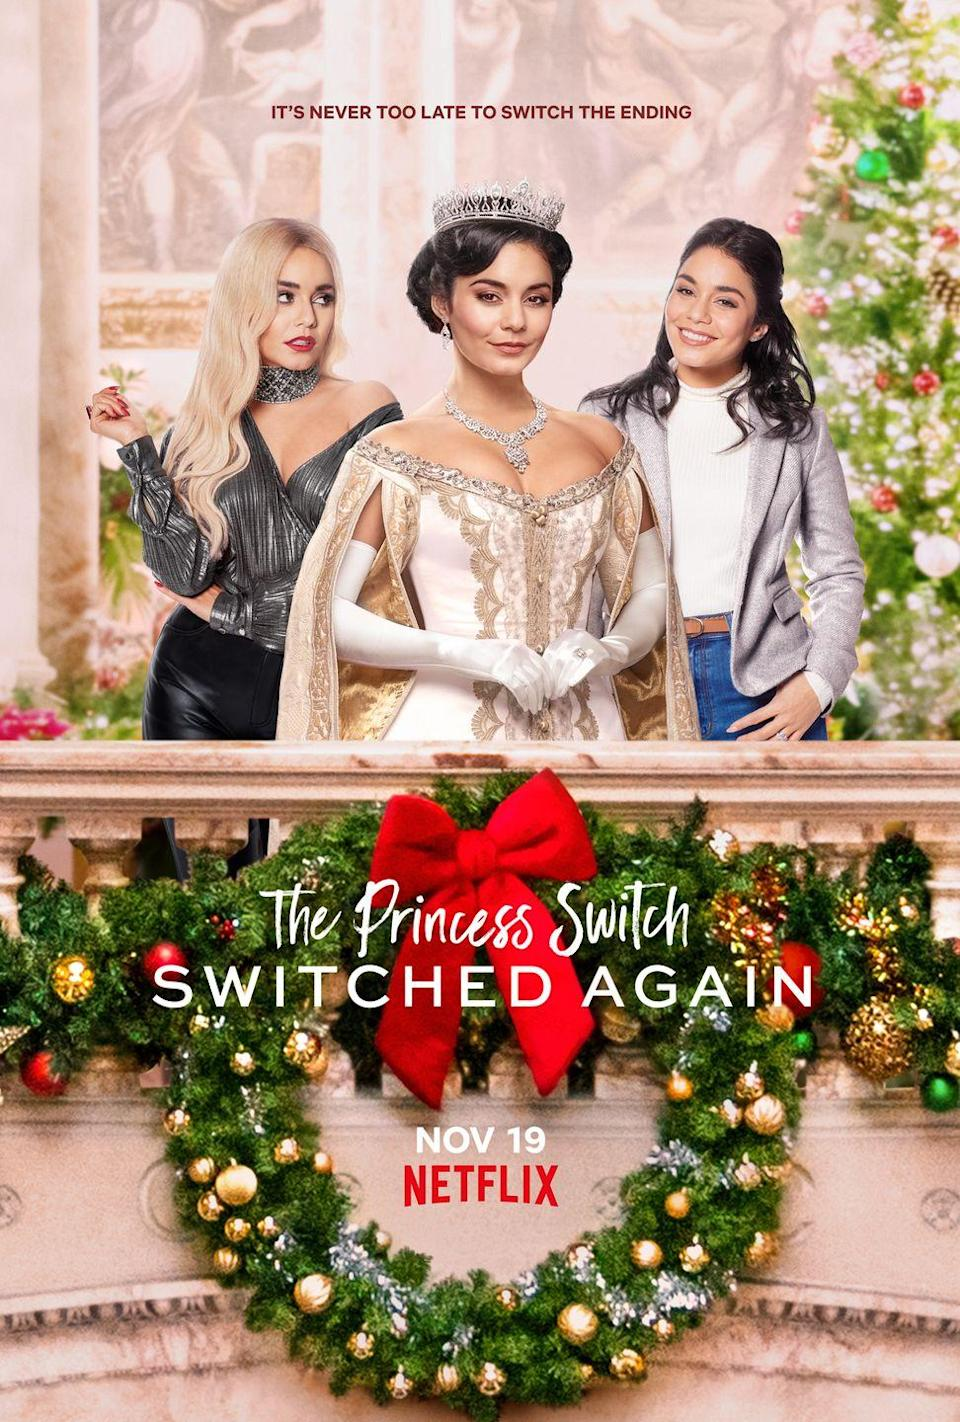 """<p>How do you make a holiday movie about two identical strangers who decide to switch places and fall in love at Christmas even better? Add a third identical stranger(ish), obviously. When soon-to-be Queen Margaret Delacourt (Vanessa Hudgens) needs some support from her closest friend before her coronation, it's back to Belgravia for Princess Stacy (Vanessa Hudgens). But no one warned the doppelgänger duo about Lady Fiona (Vanessa Hudgens), who has a dastardly plot to bring down Margaret—and the holidays.</p><p><a class=""""link rapid-noclick-resp"""" href=""""https://www.netflix.com/title/81084350"""" rel=""""nofollow noopener"""" target=""""_blank"""" data-ylk=""""slk:Watch Now"""">Watch Now</a></p>"""